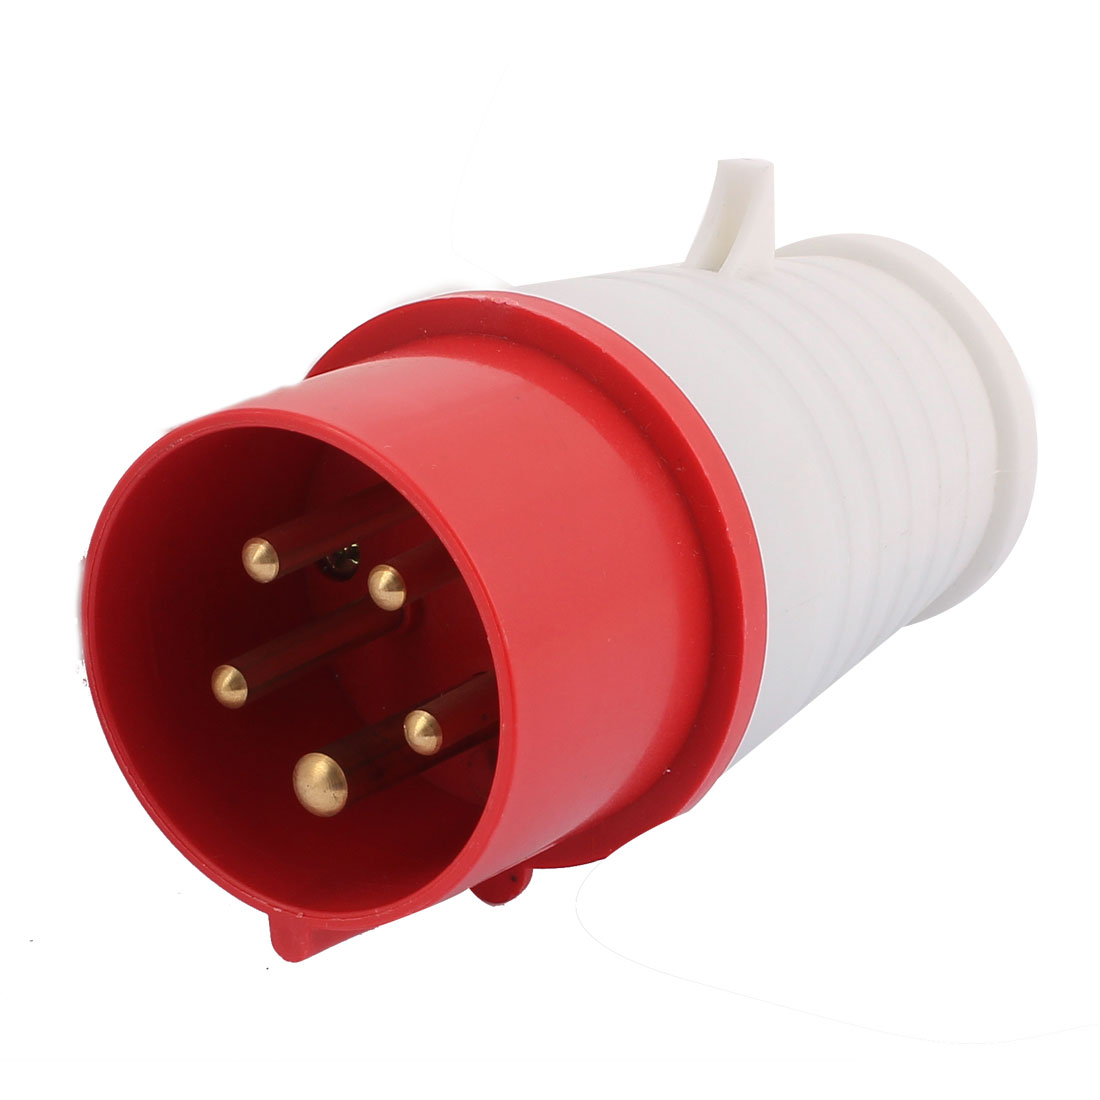 AC 240V-415V 16A IP44 3P+N+E 5-Terminal Male Industrial Electrical Plug